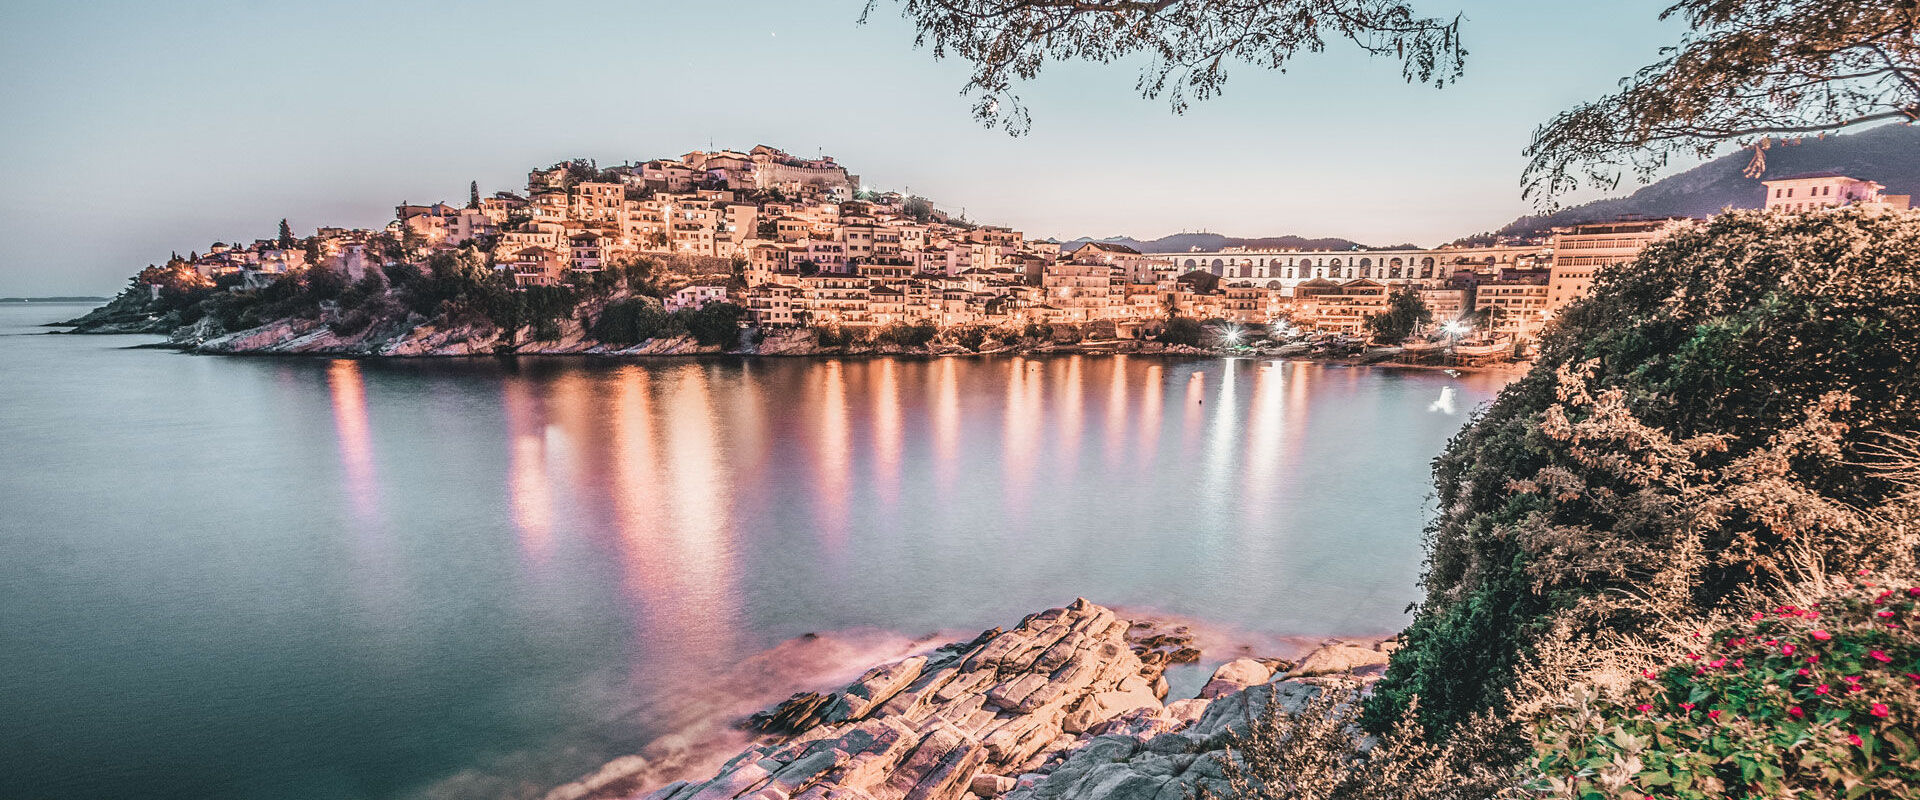 Night view of Kavala's Acropolis, Old Town and Kamares